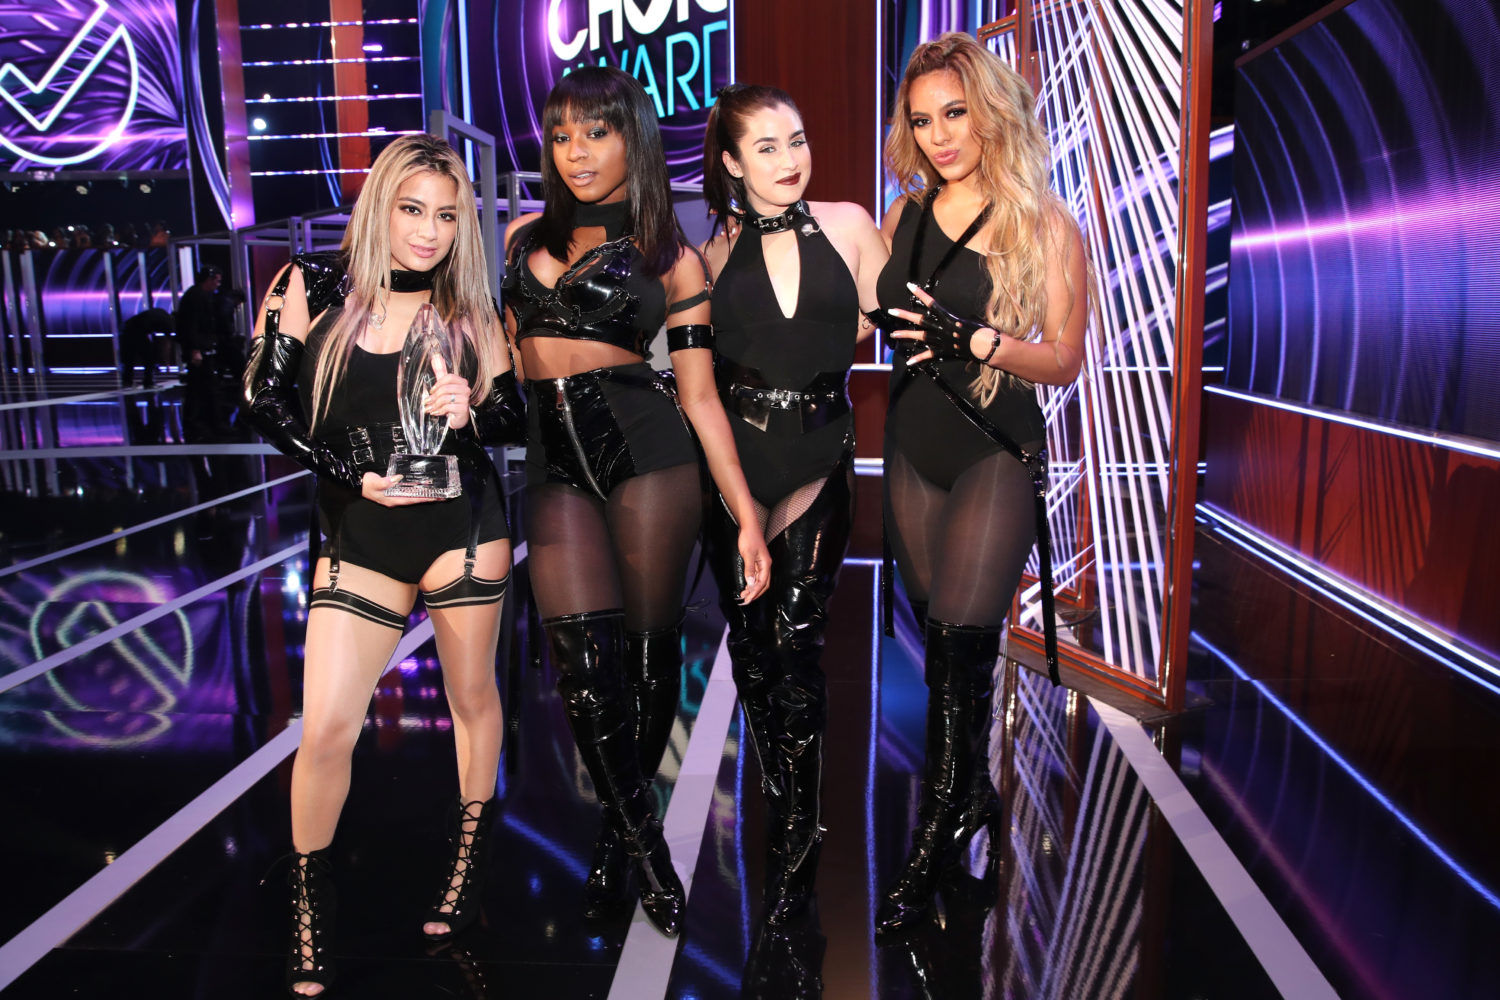 Fifth Harmony performed for the first time without Camila Cabello at the People's Choice Awards, and totally killed it